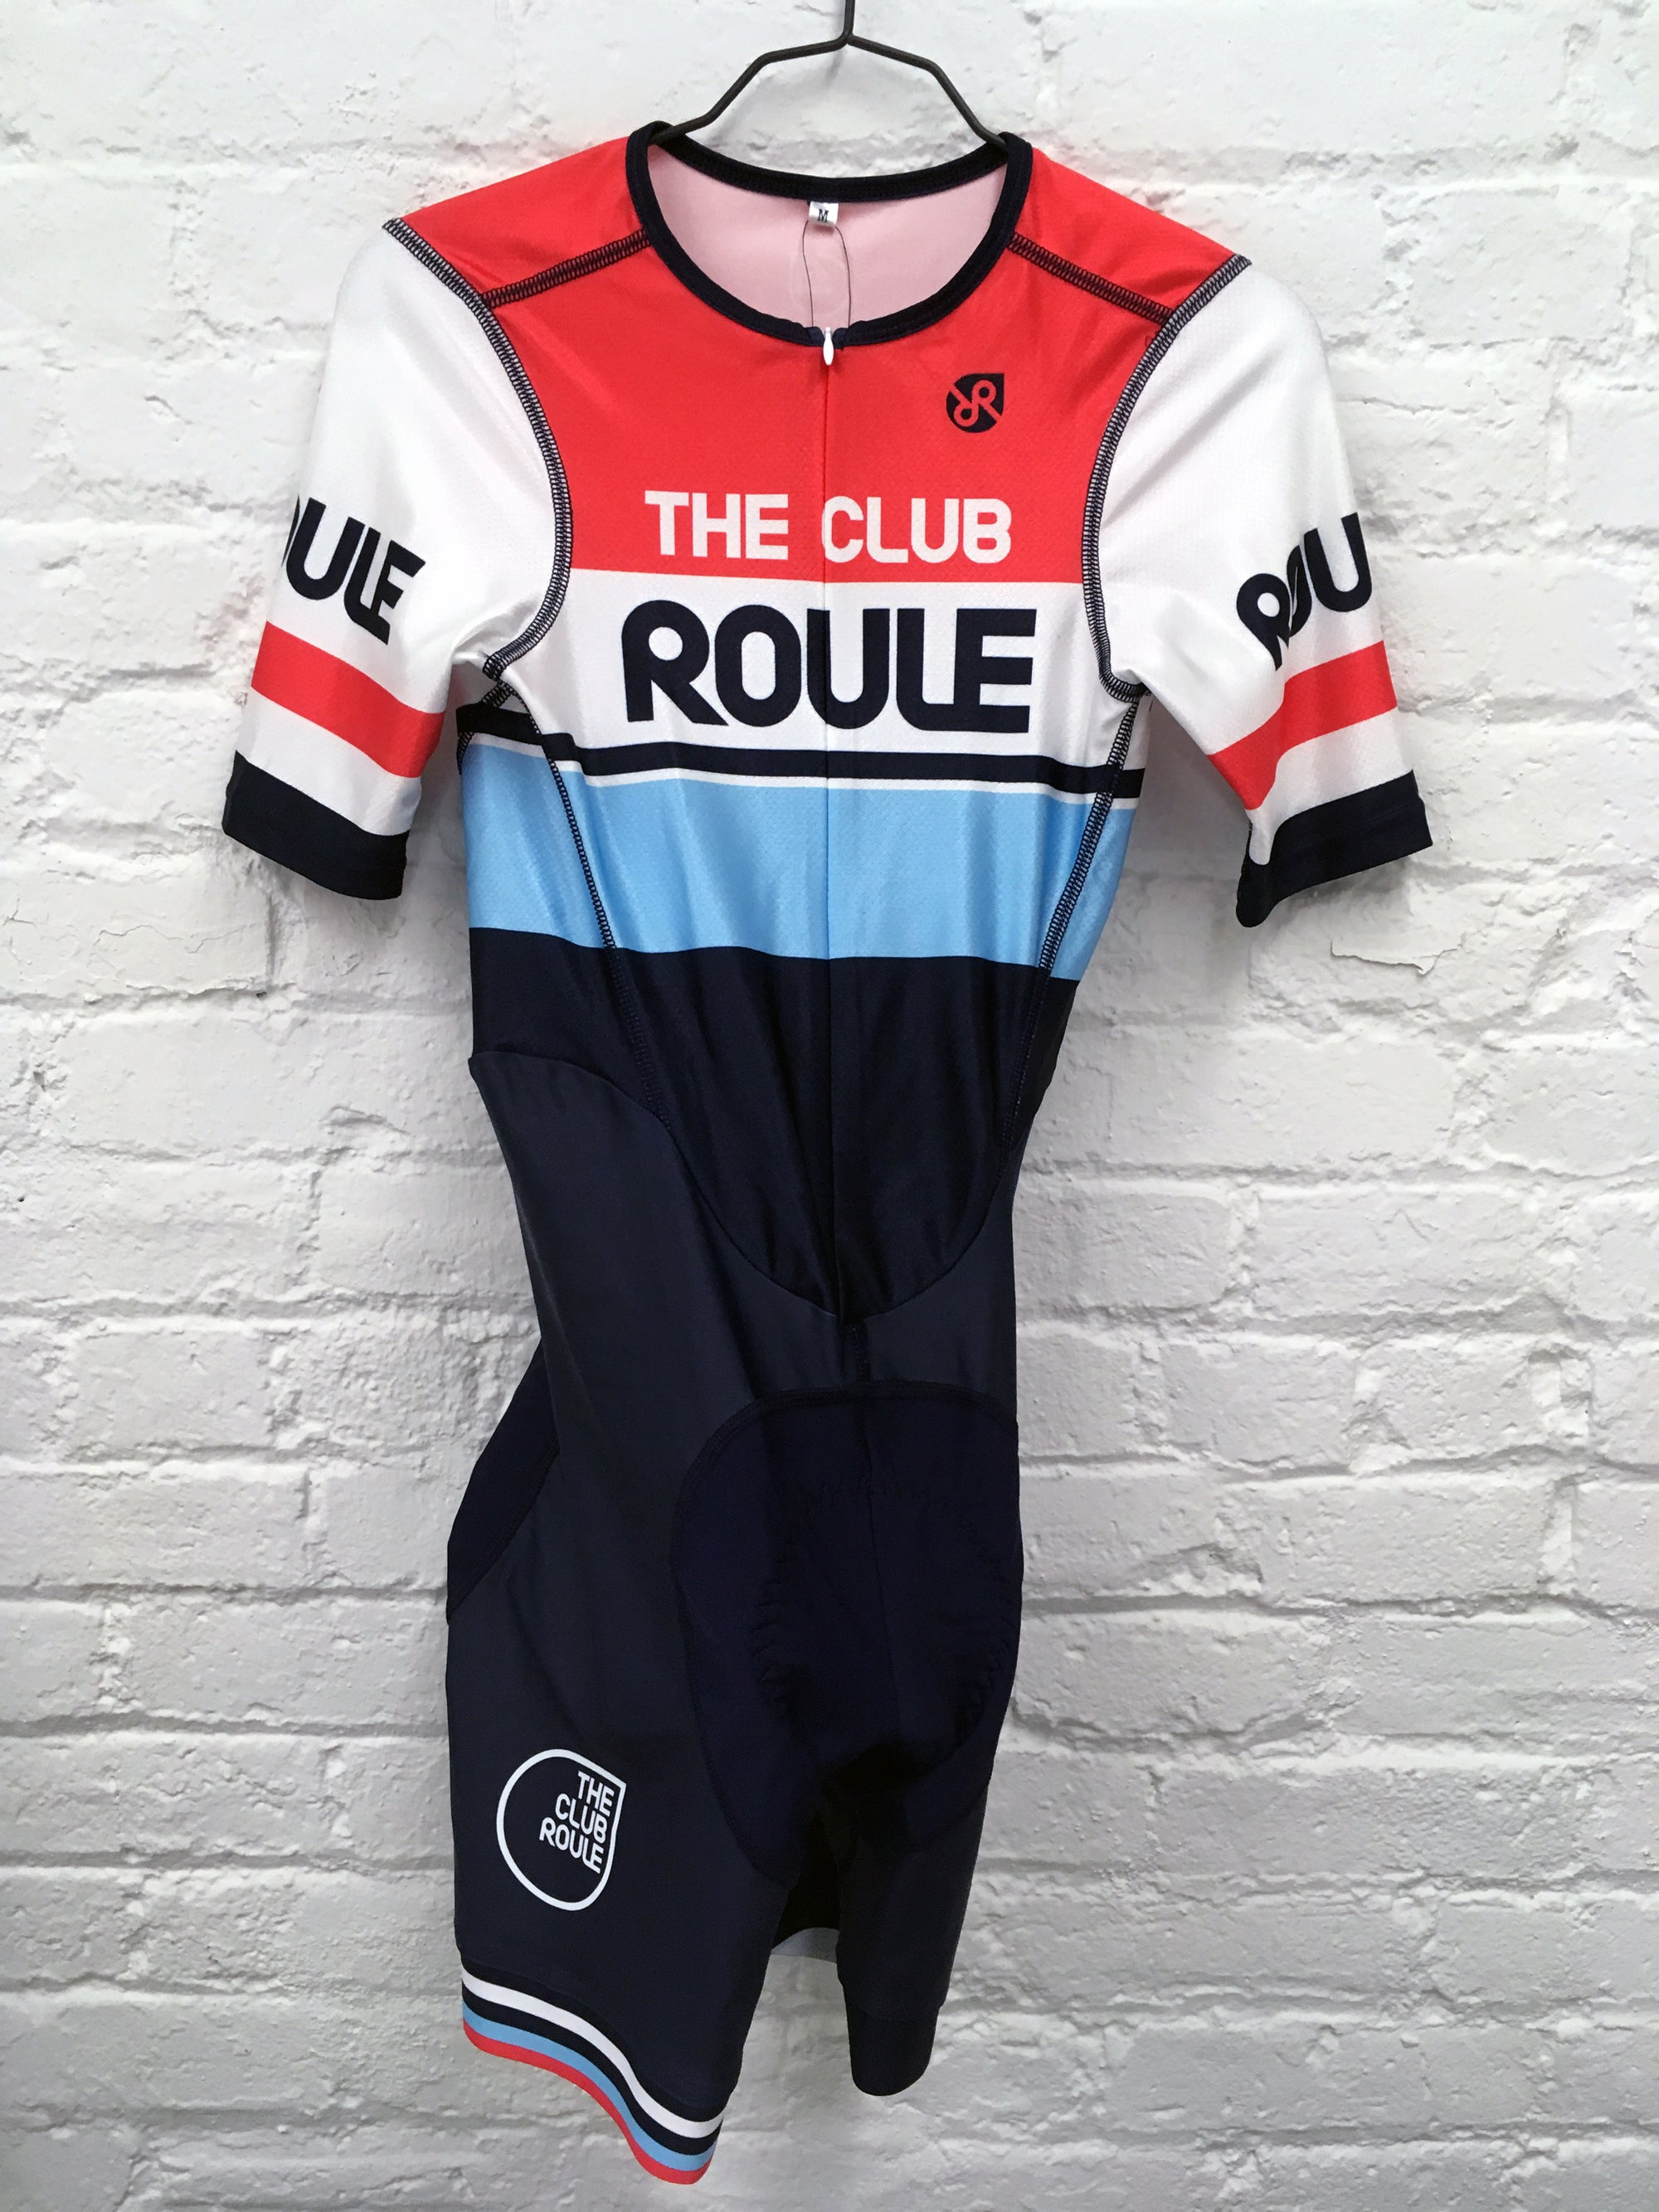 The Club Roule 2019 Short Sleeve Skinsuit (Summer) - Women